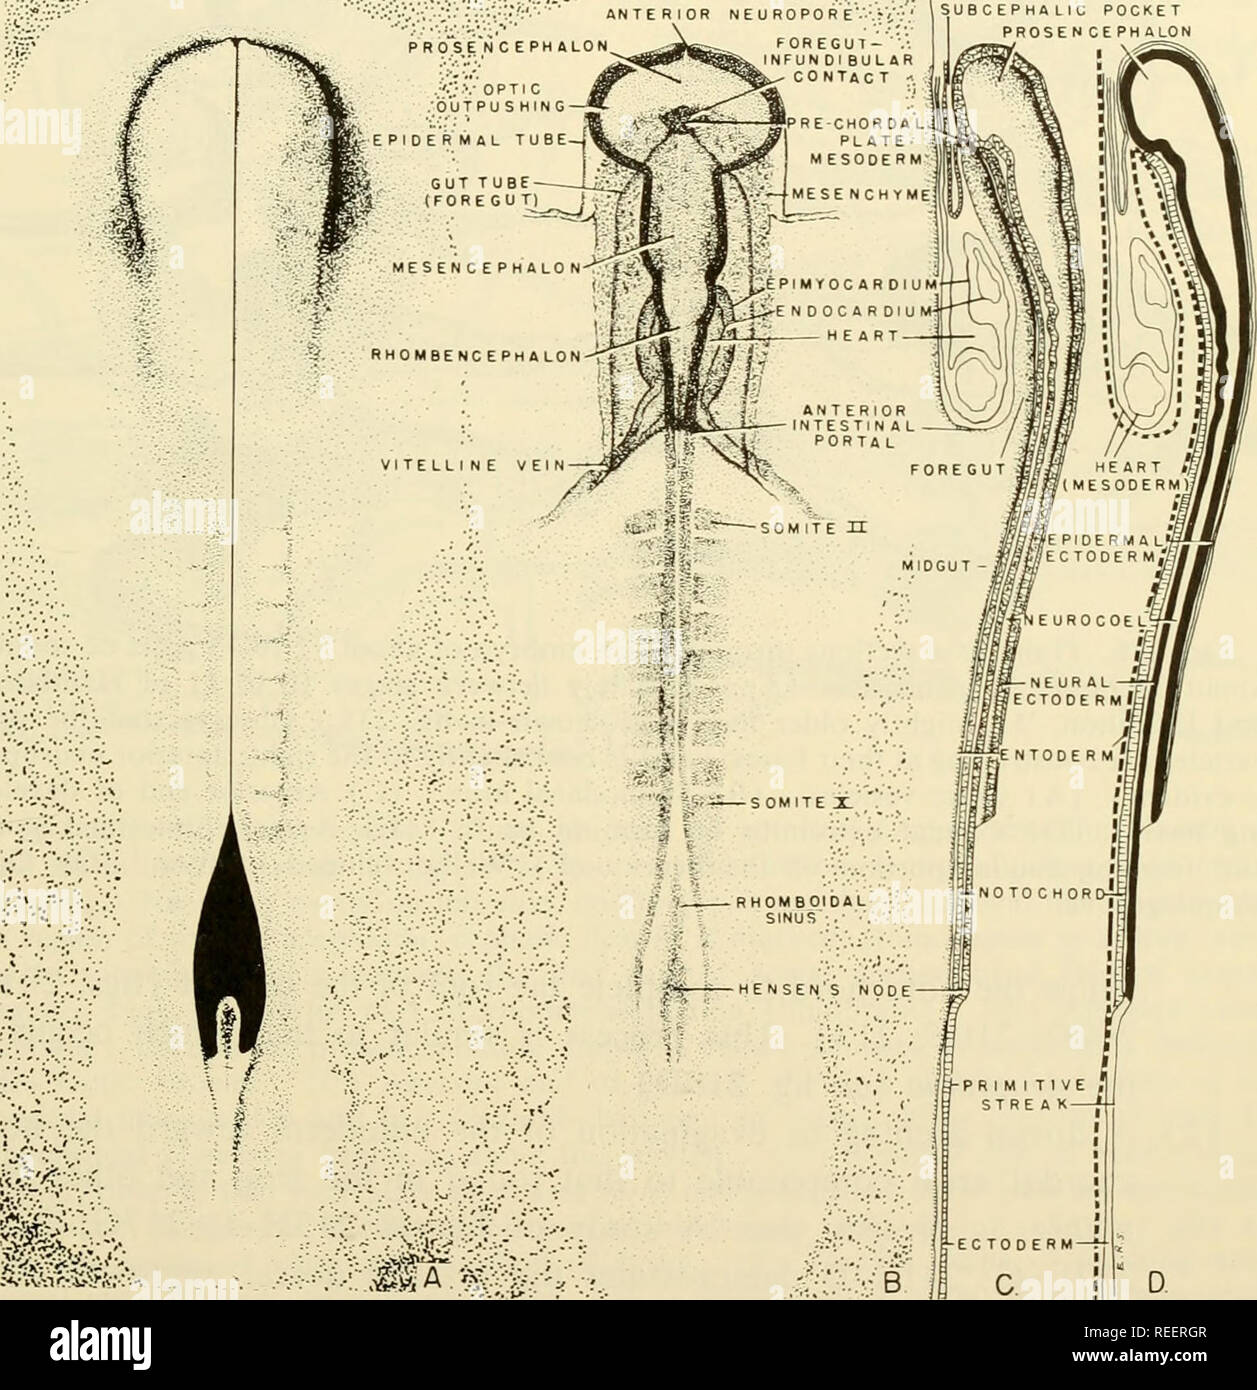 . Comparative embryology of the vertebrates; with 2057 drawings and photos. grouped as 380 illus. Vertebrates -- Embryology; Comparative embryology. TUBULATION OF ORGAN-FORMING AREAS 485 vagination from the epidermal (ectodermal) tube (fig. 242G). Similarly, the caudal region of the hindgut rudiment contacts the proctodaeal invagination of the epidermal tube, while a tail gut extension continues into the tail (fig. 217). The formation of definitive walls of the midgut area in embryos developing from the flattened gastrular condition (including the higher mammals which do not possess large amou - Stock Image